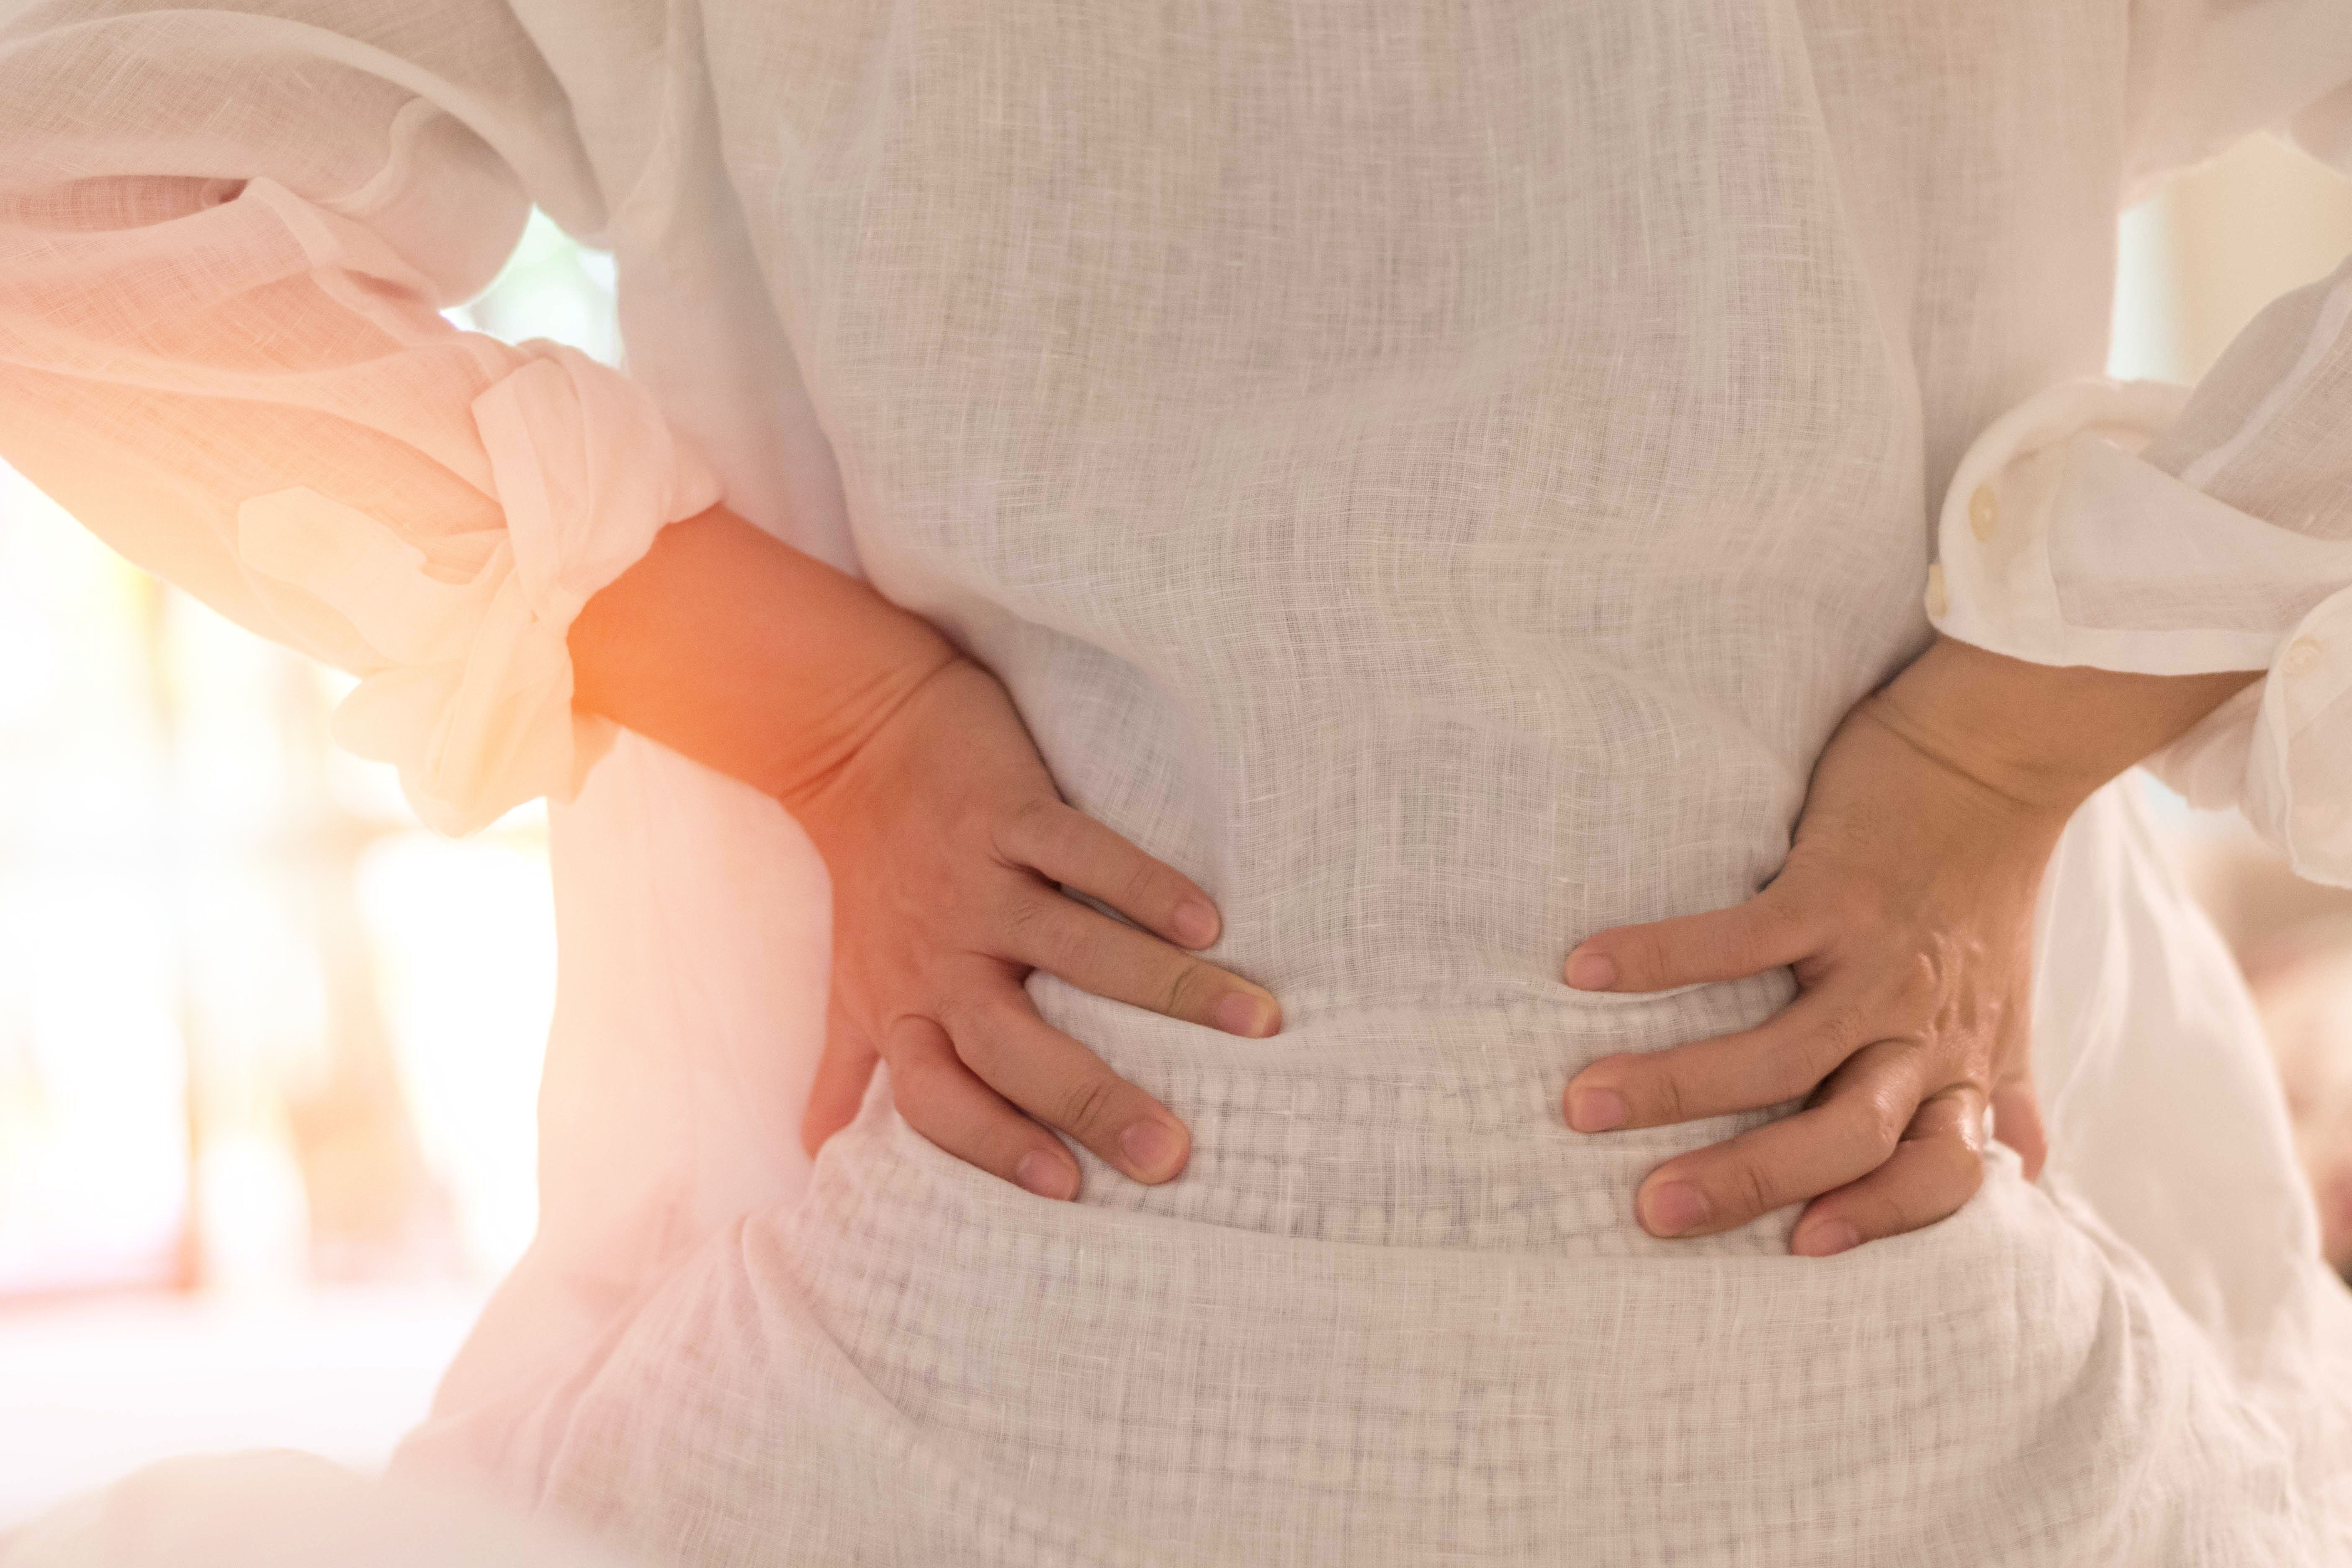 Is it axSpA or just a simple case of pelvic pain?